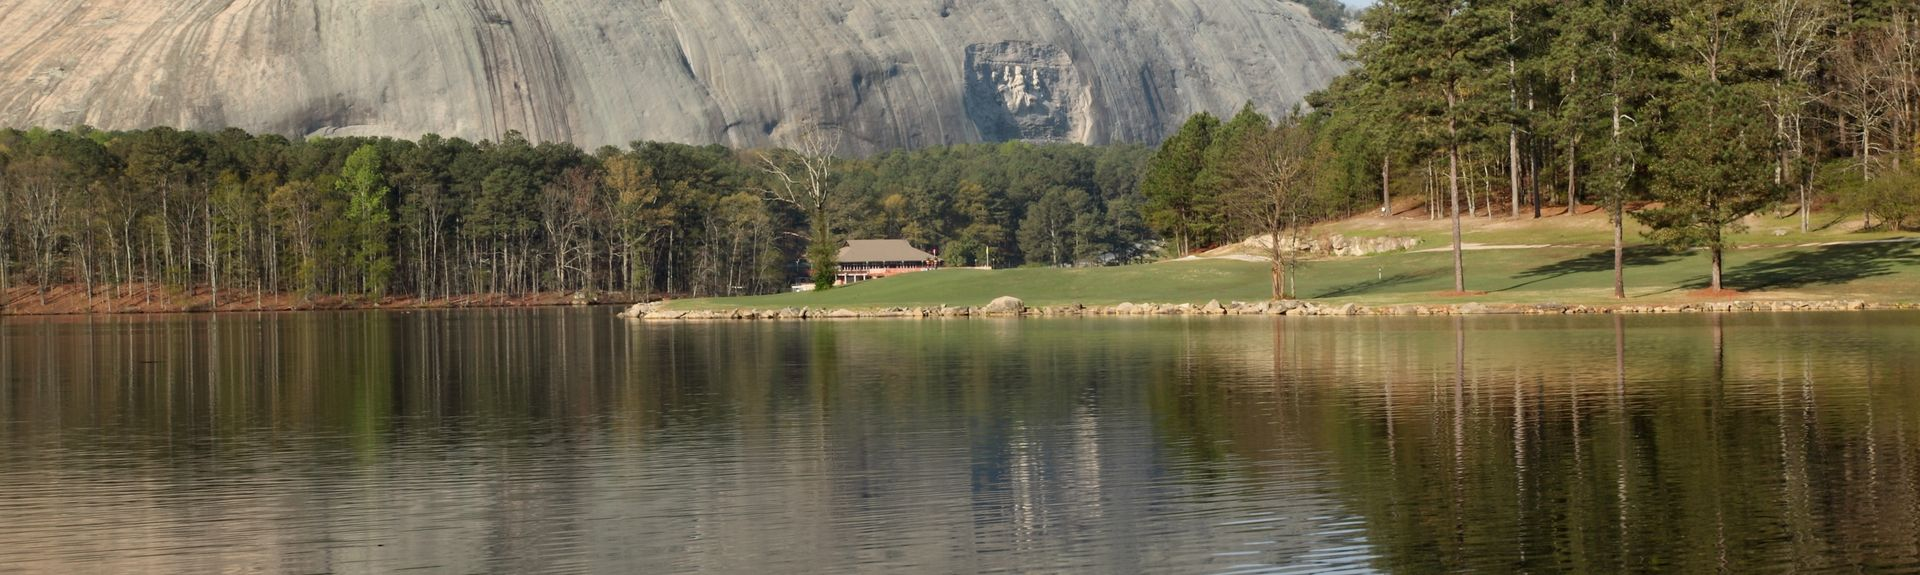 Stone Mountain, Georgia, United States of America